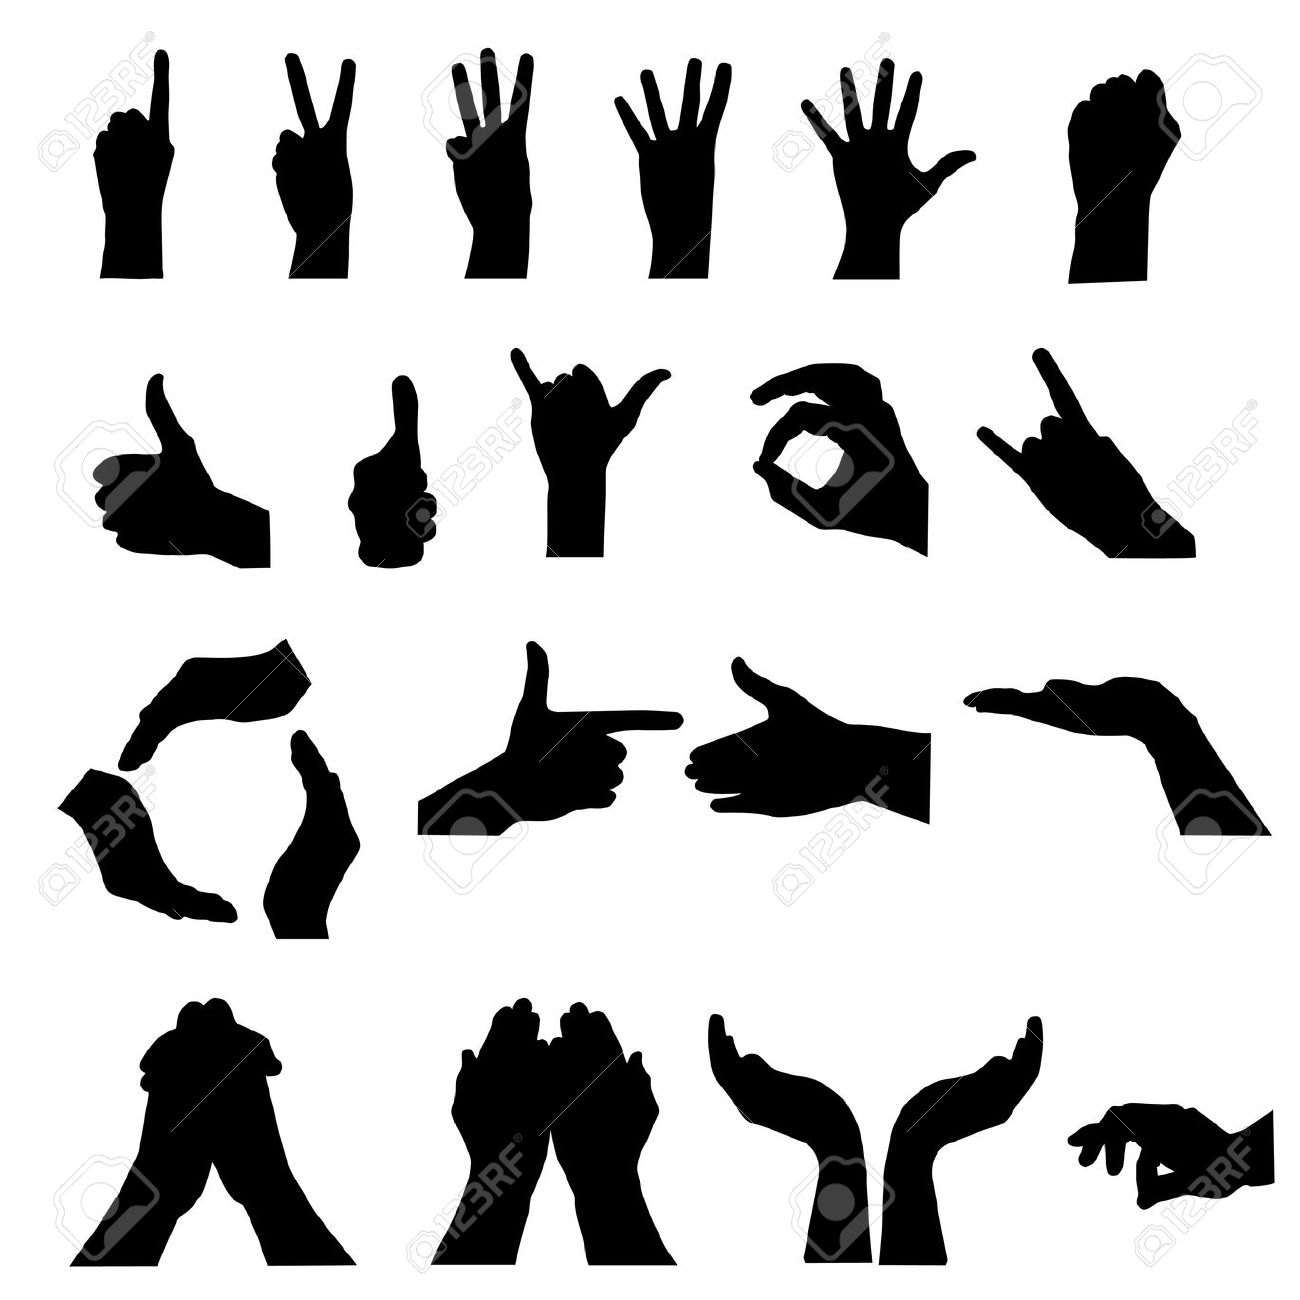 Hand Signal On White. Vector Illustration Royalty Free Cliparts.